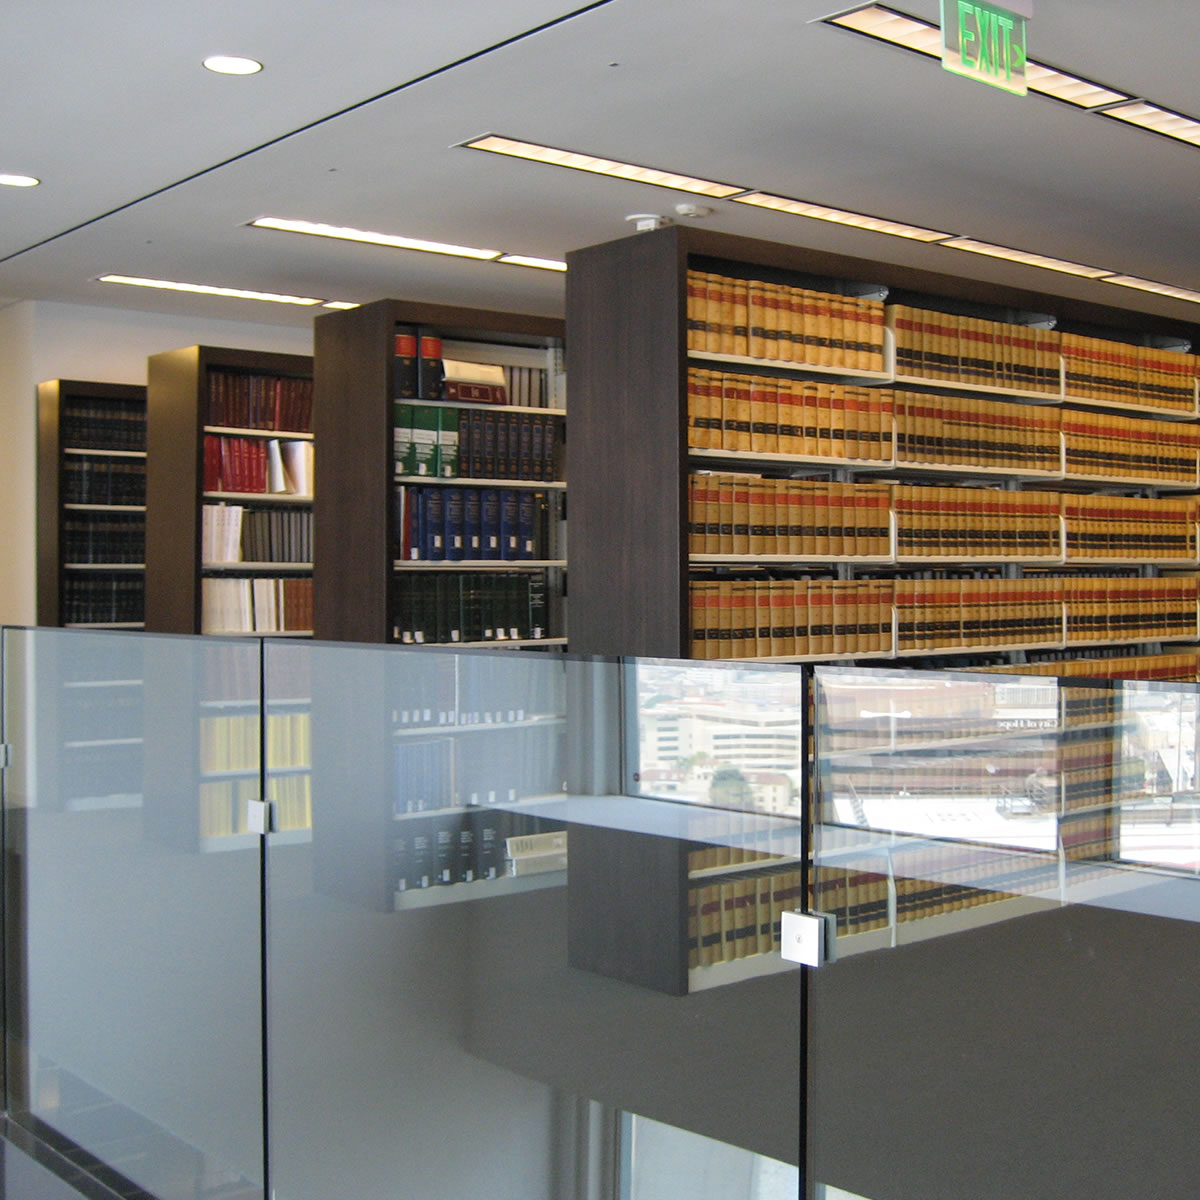 Law Firm Legal Library Shelving System